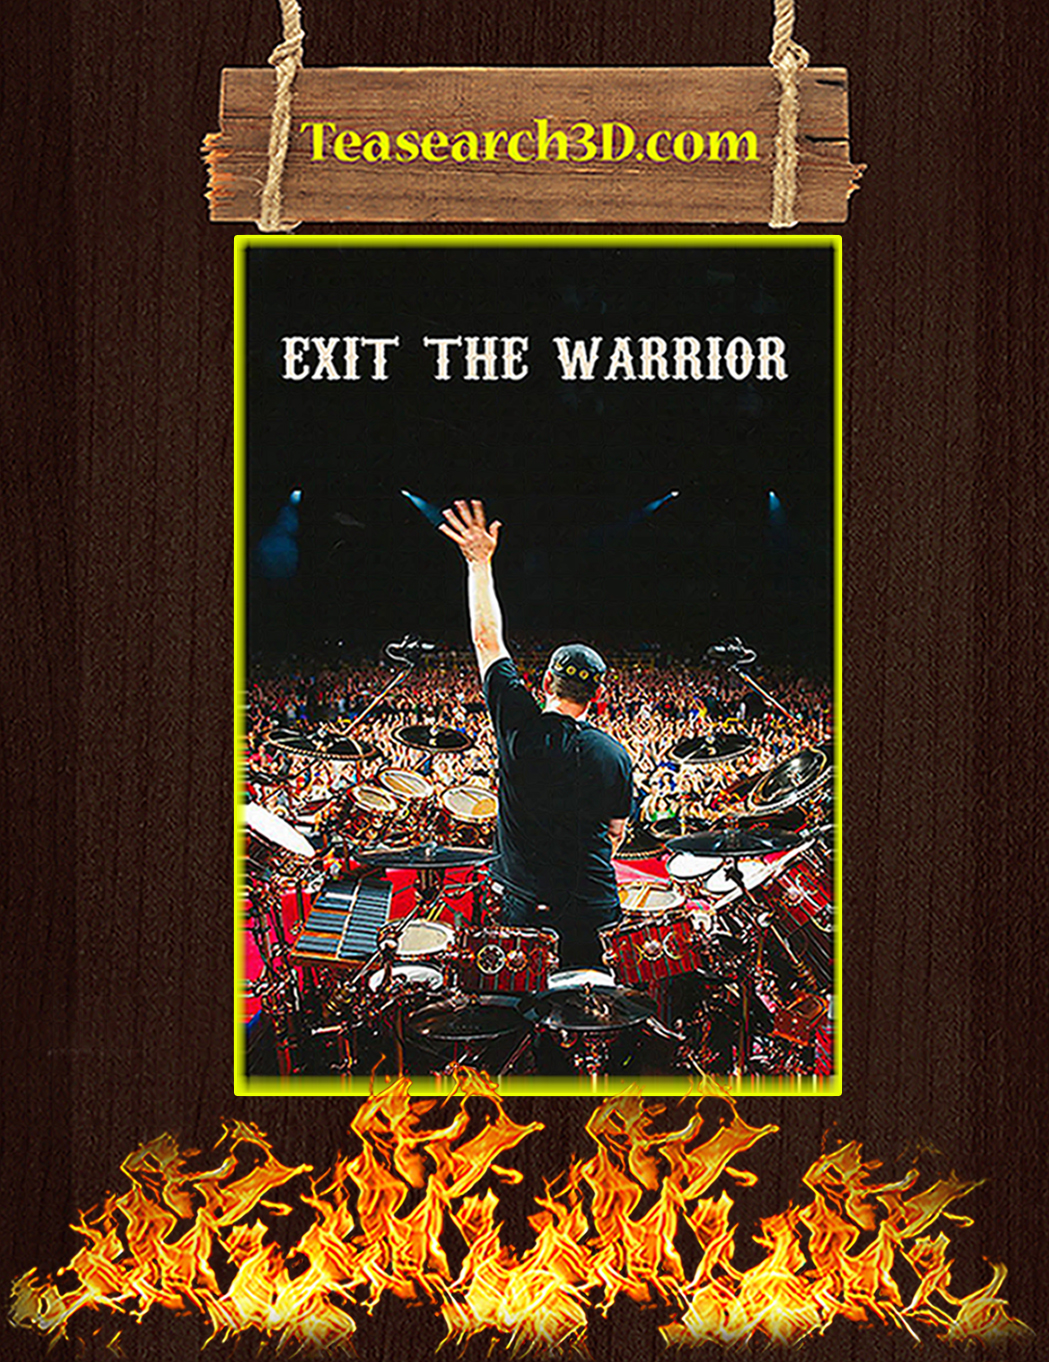 Neil peart exit the warrior poster A1